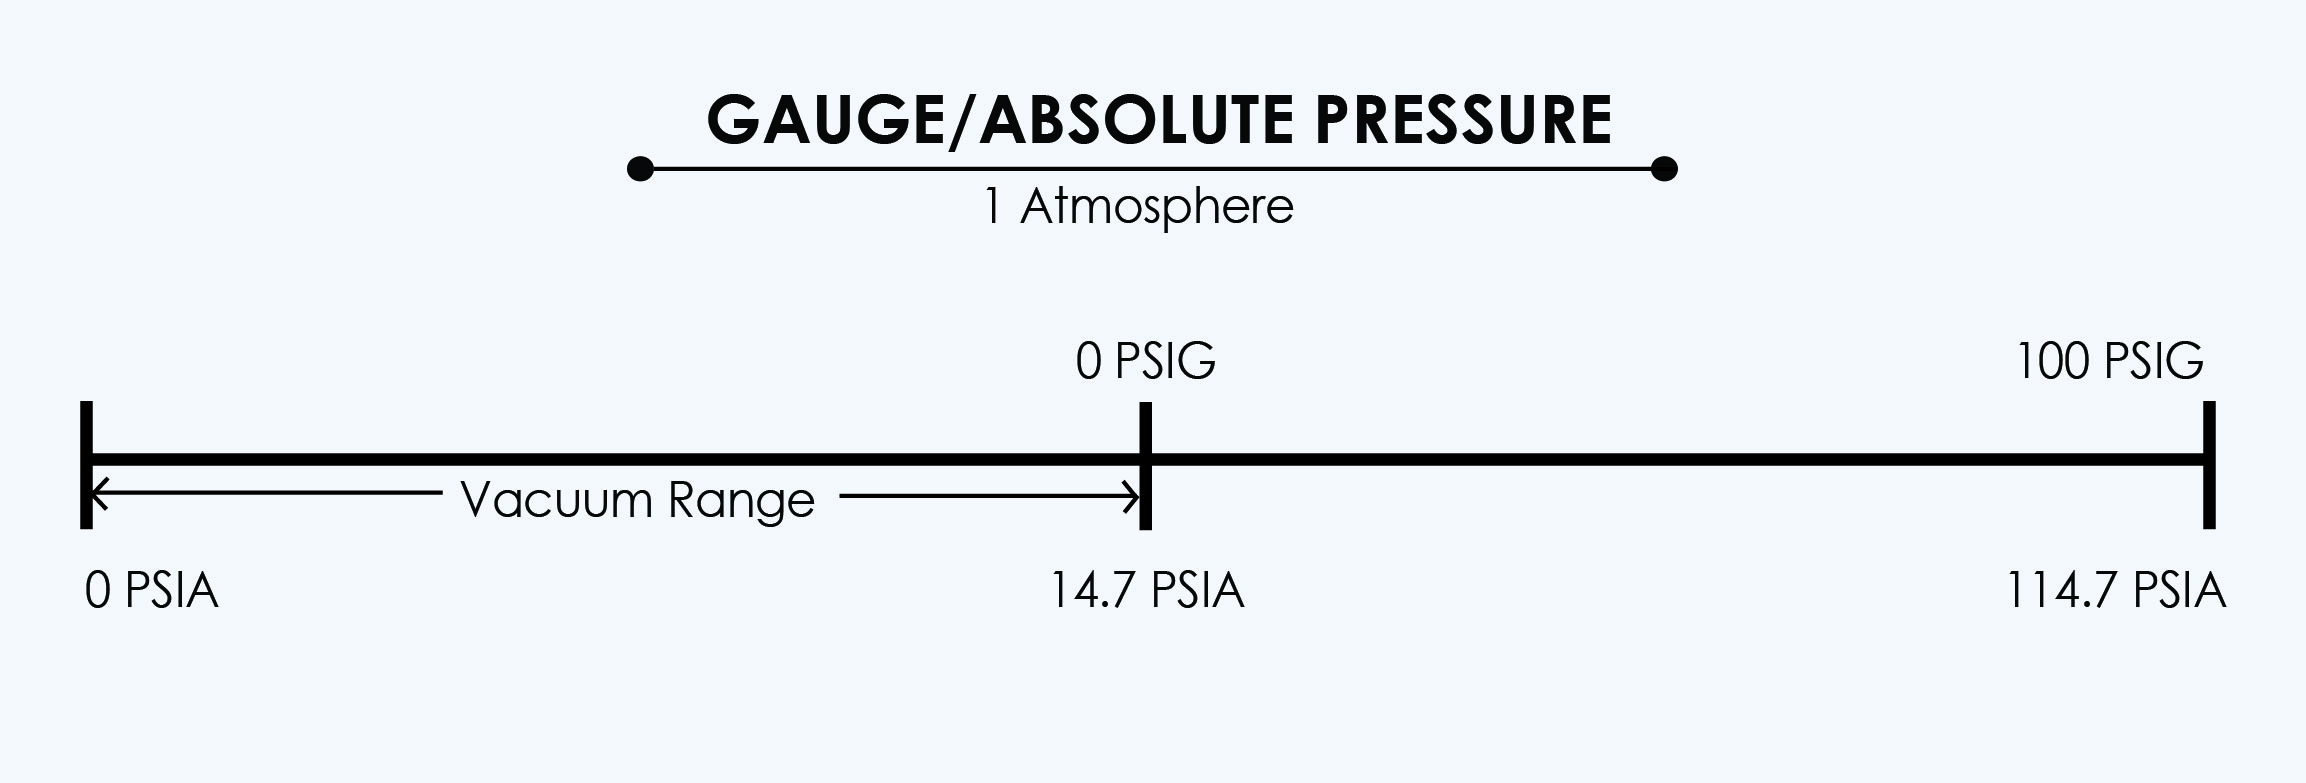 gauge_vs_absolute-01-1.jpg